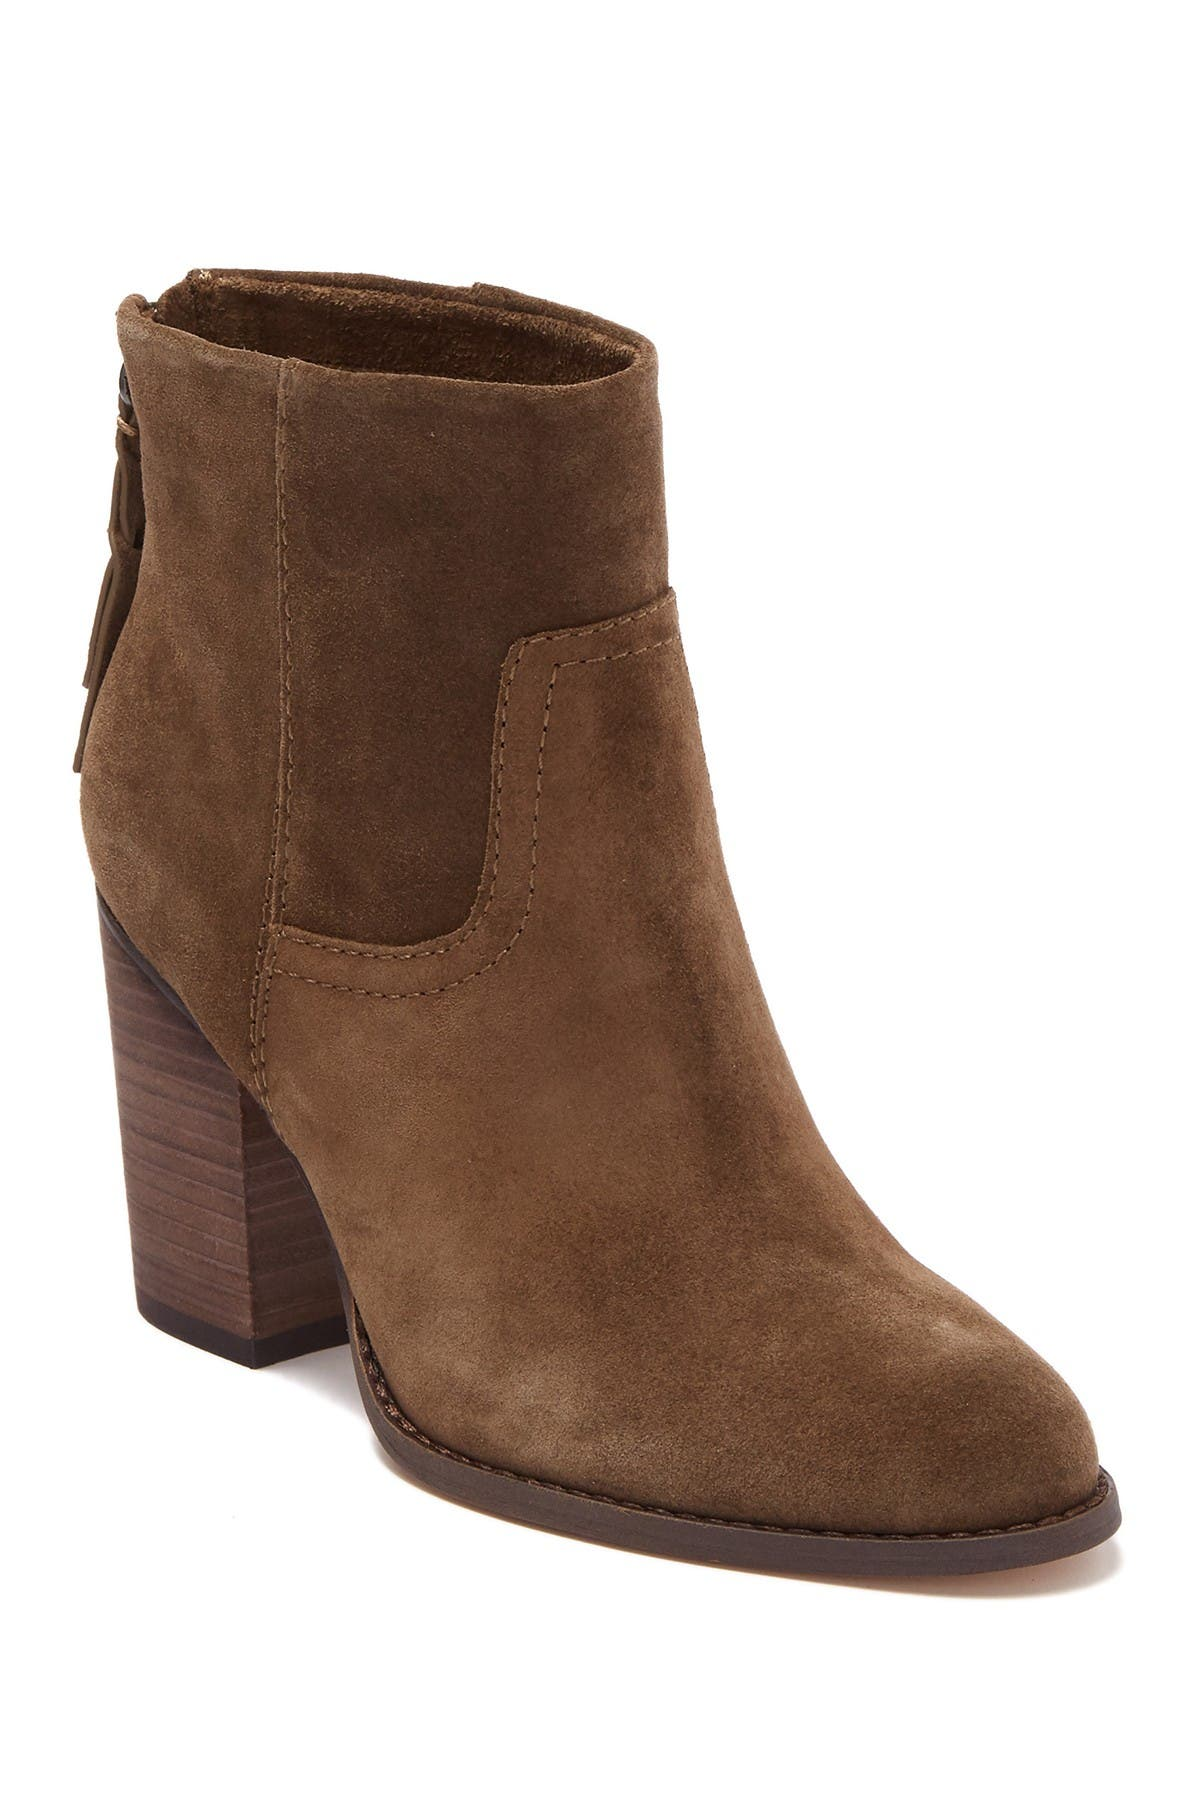 Image of Splendid Hila High Suede Above Ankle Boot